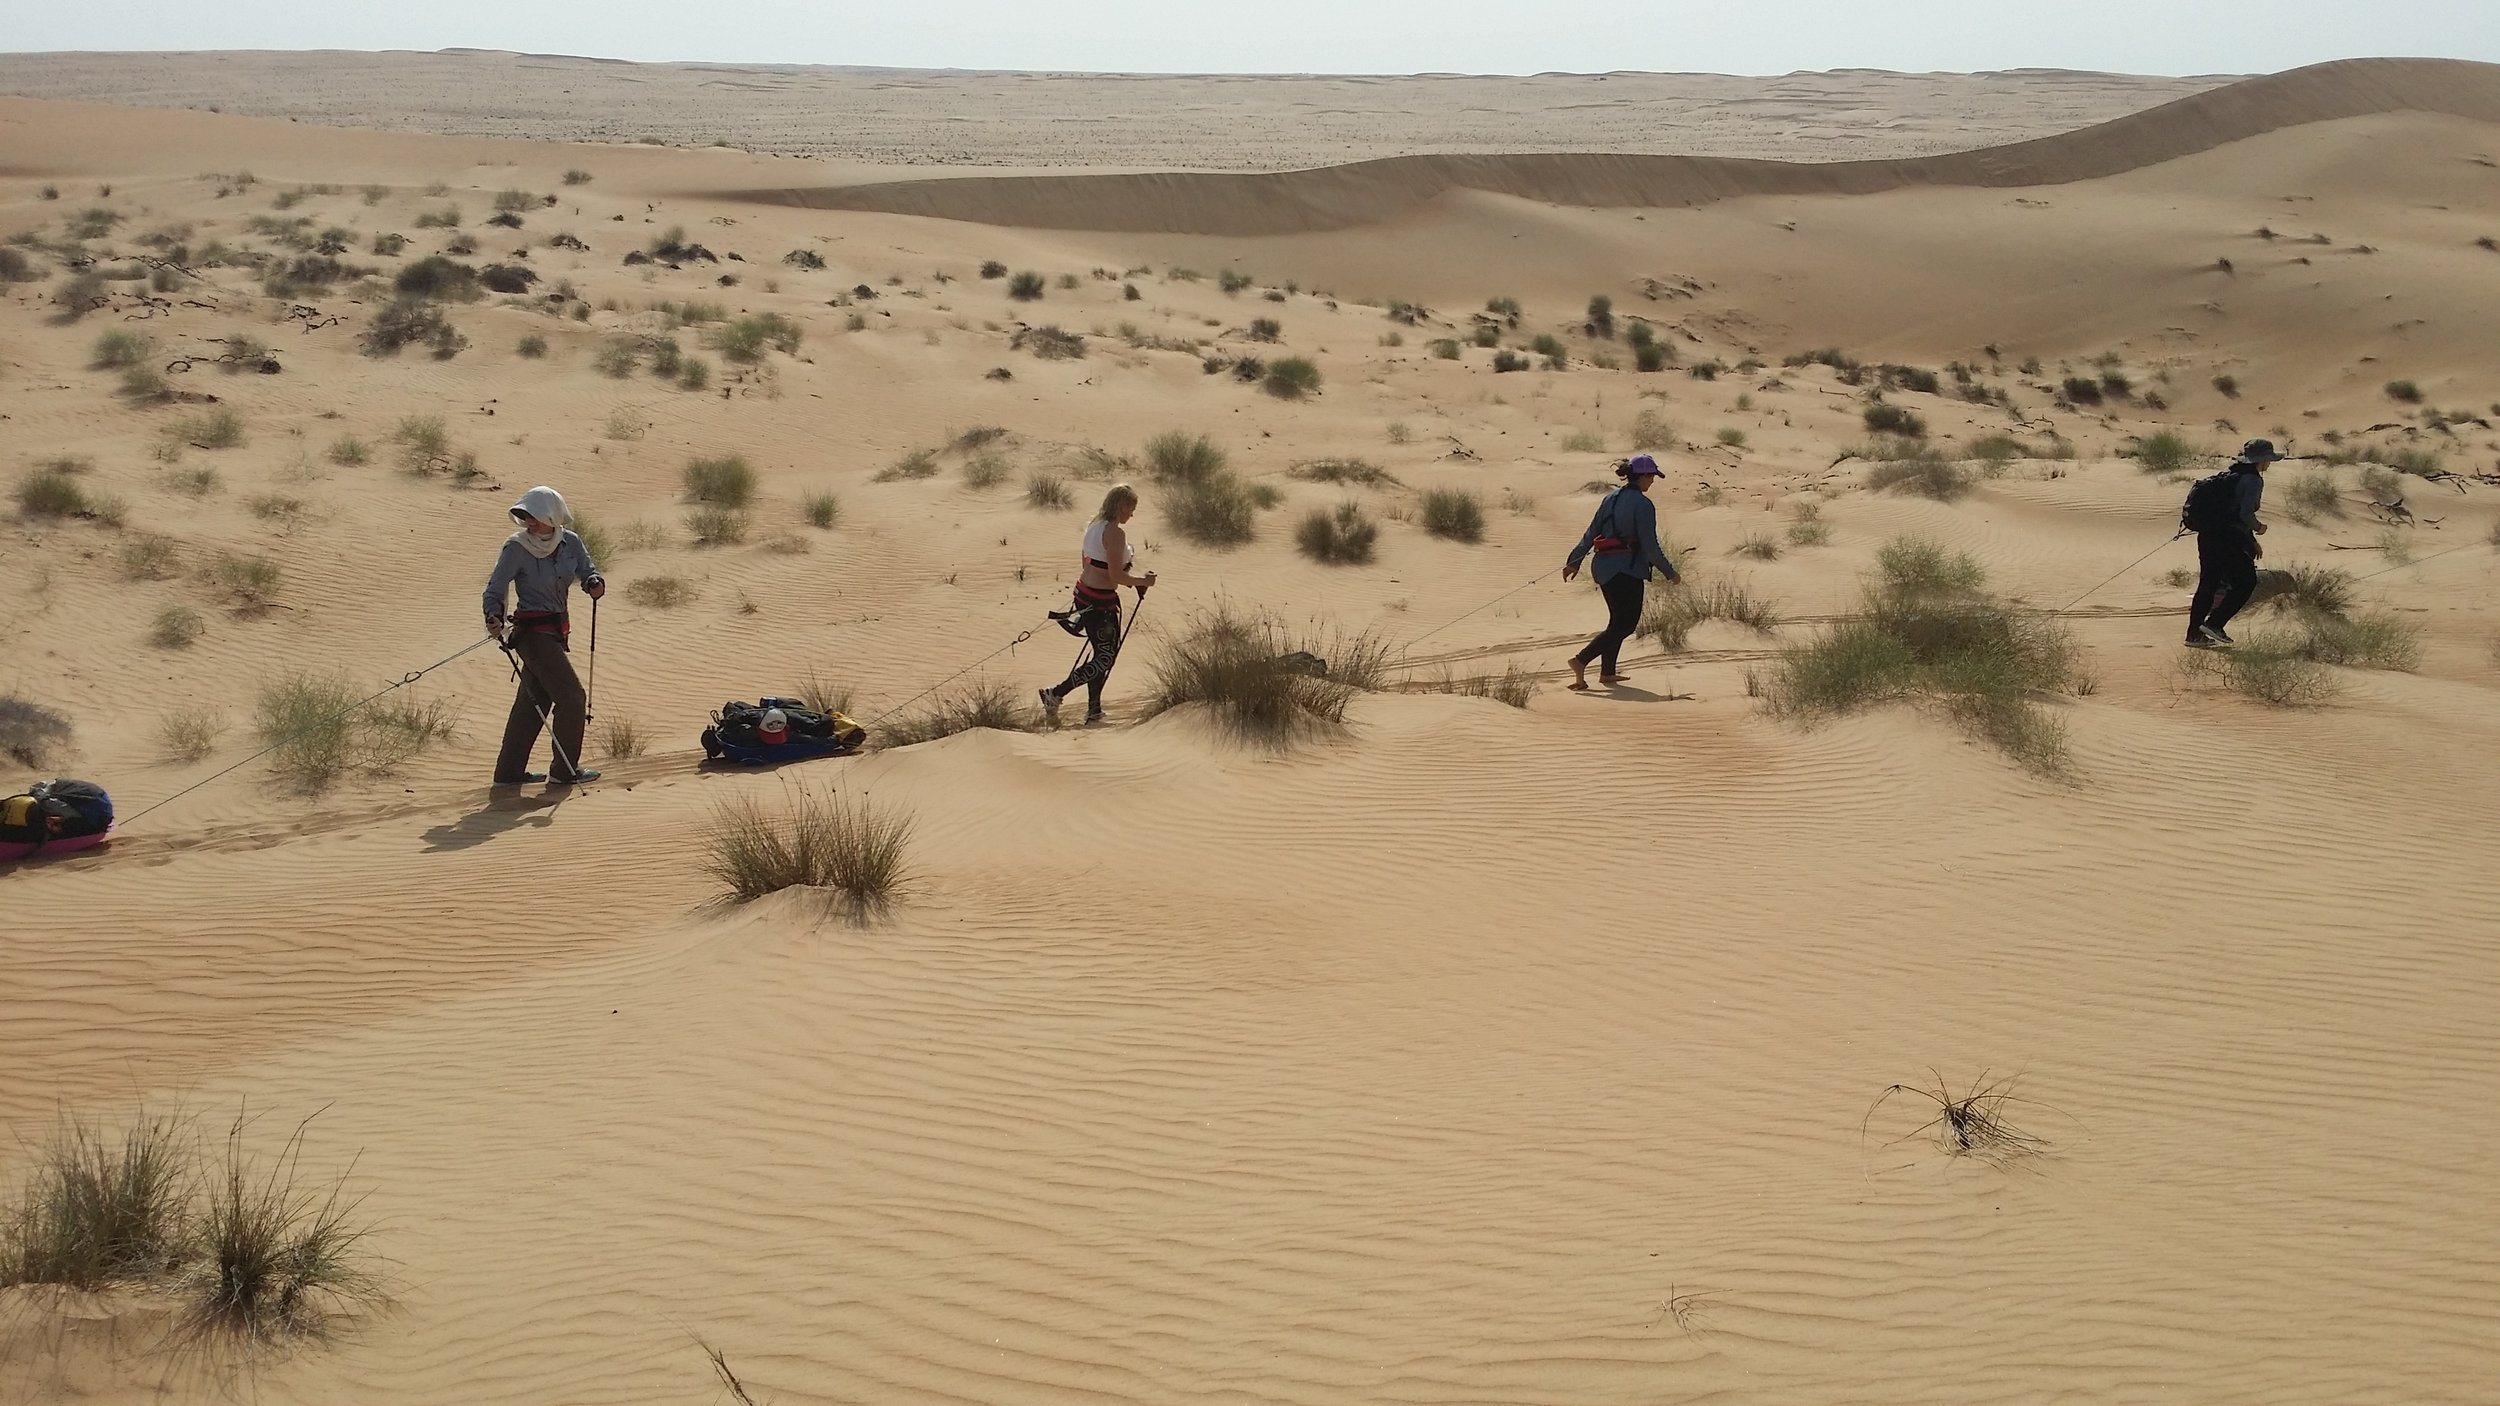 Nearing the end of the Wahiba Sands.